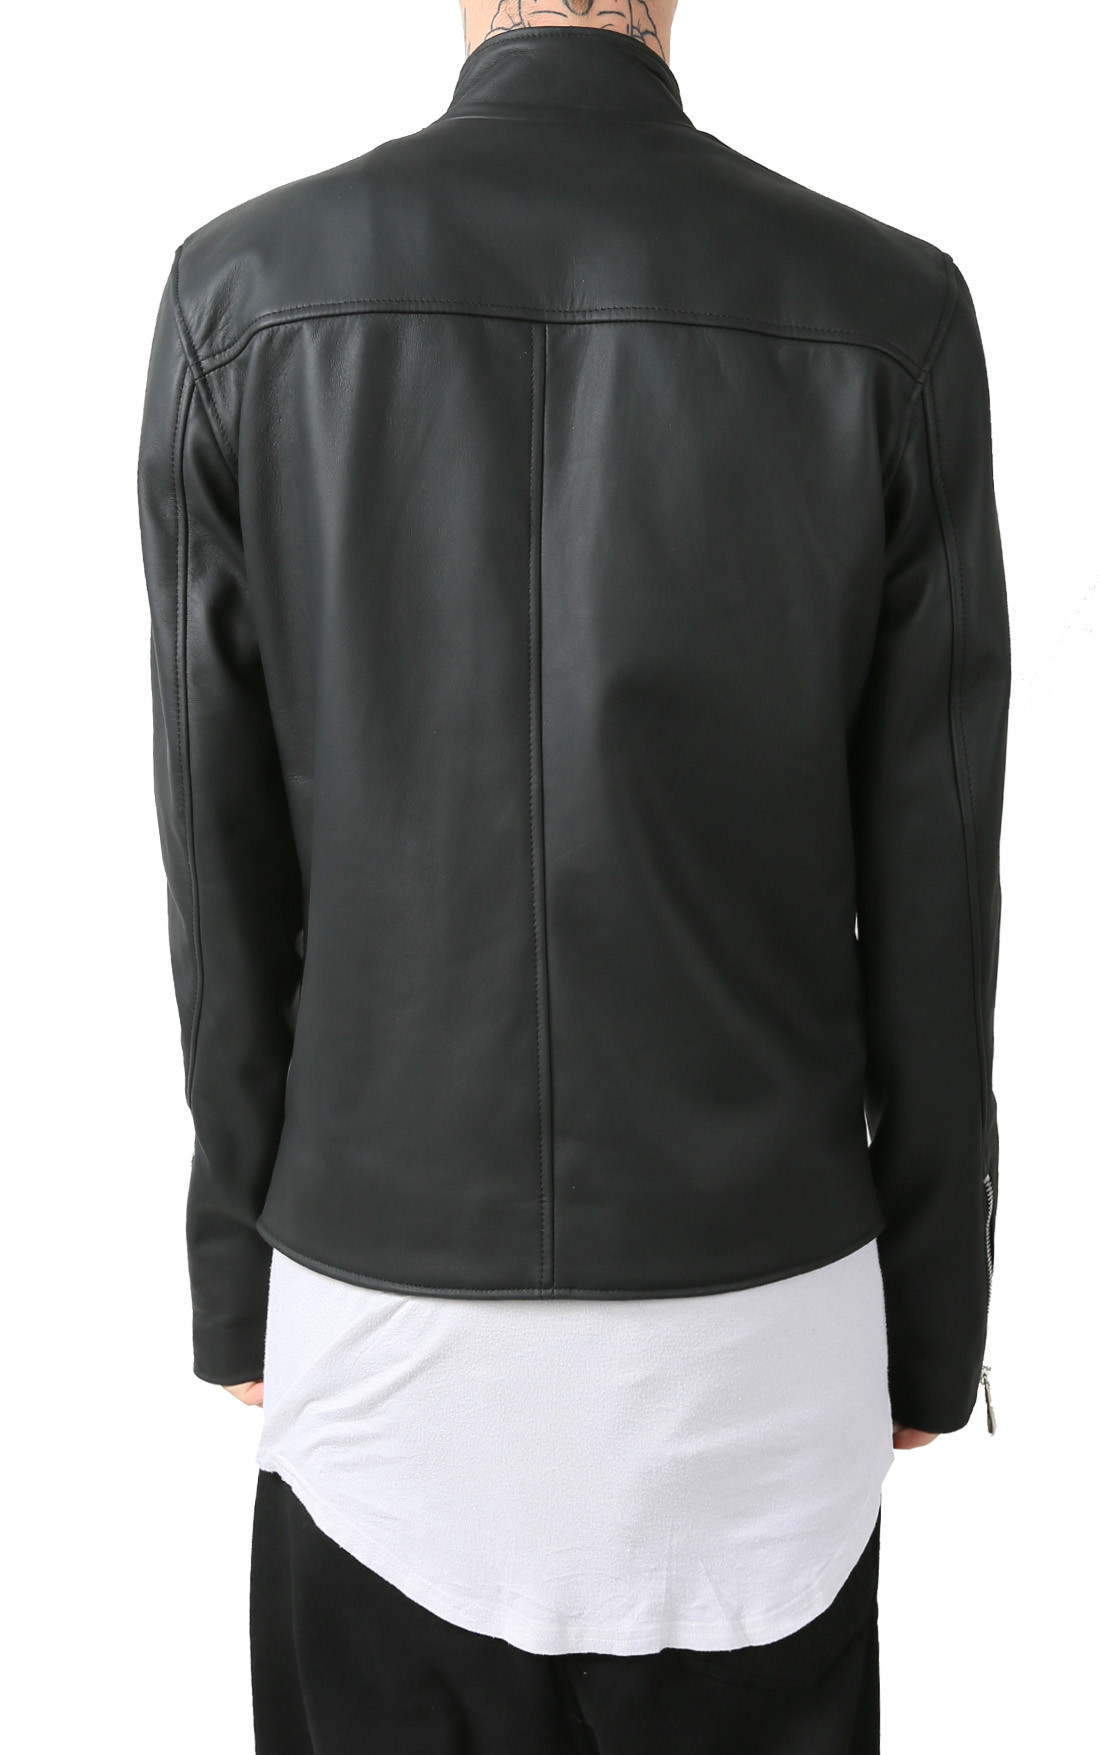 RH45 - Black Leather Jacket with Three Zip Detail (J700)